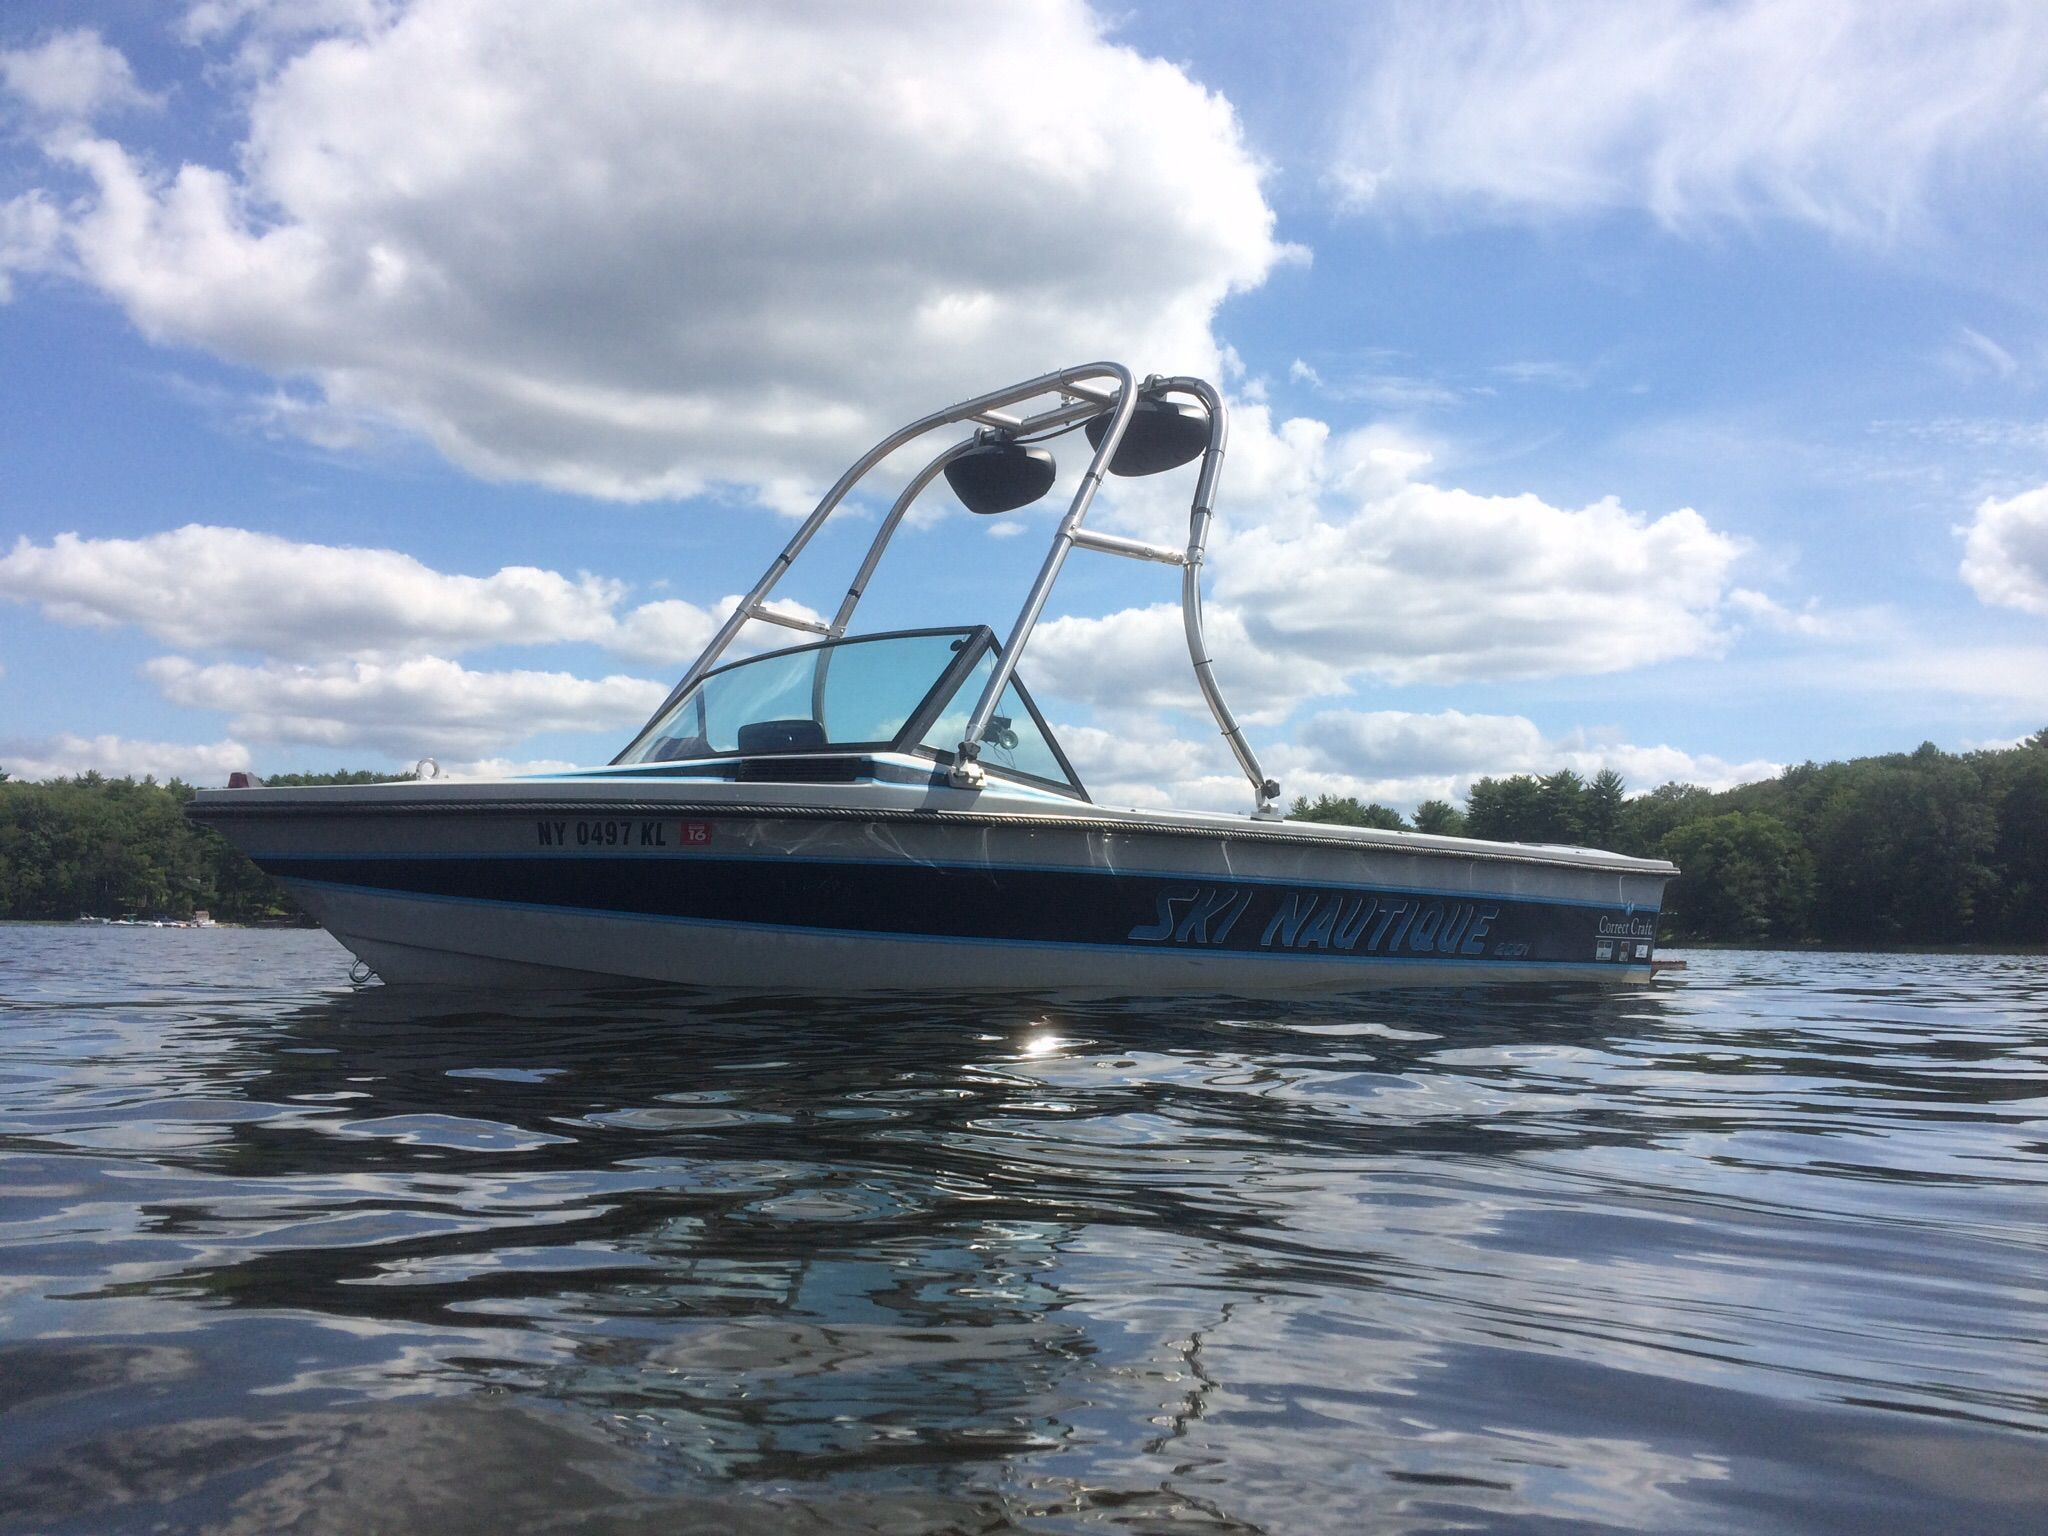 1989 Correct Craft Ski Nautique 2001 Boat With Big Air F2o W 1989 Correct Craft Ski Nautique 2001 Boat With Big Air F2o Wakeboard In 2020 Boat Wakeboarding Skiing